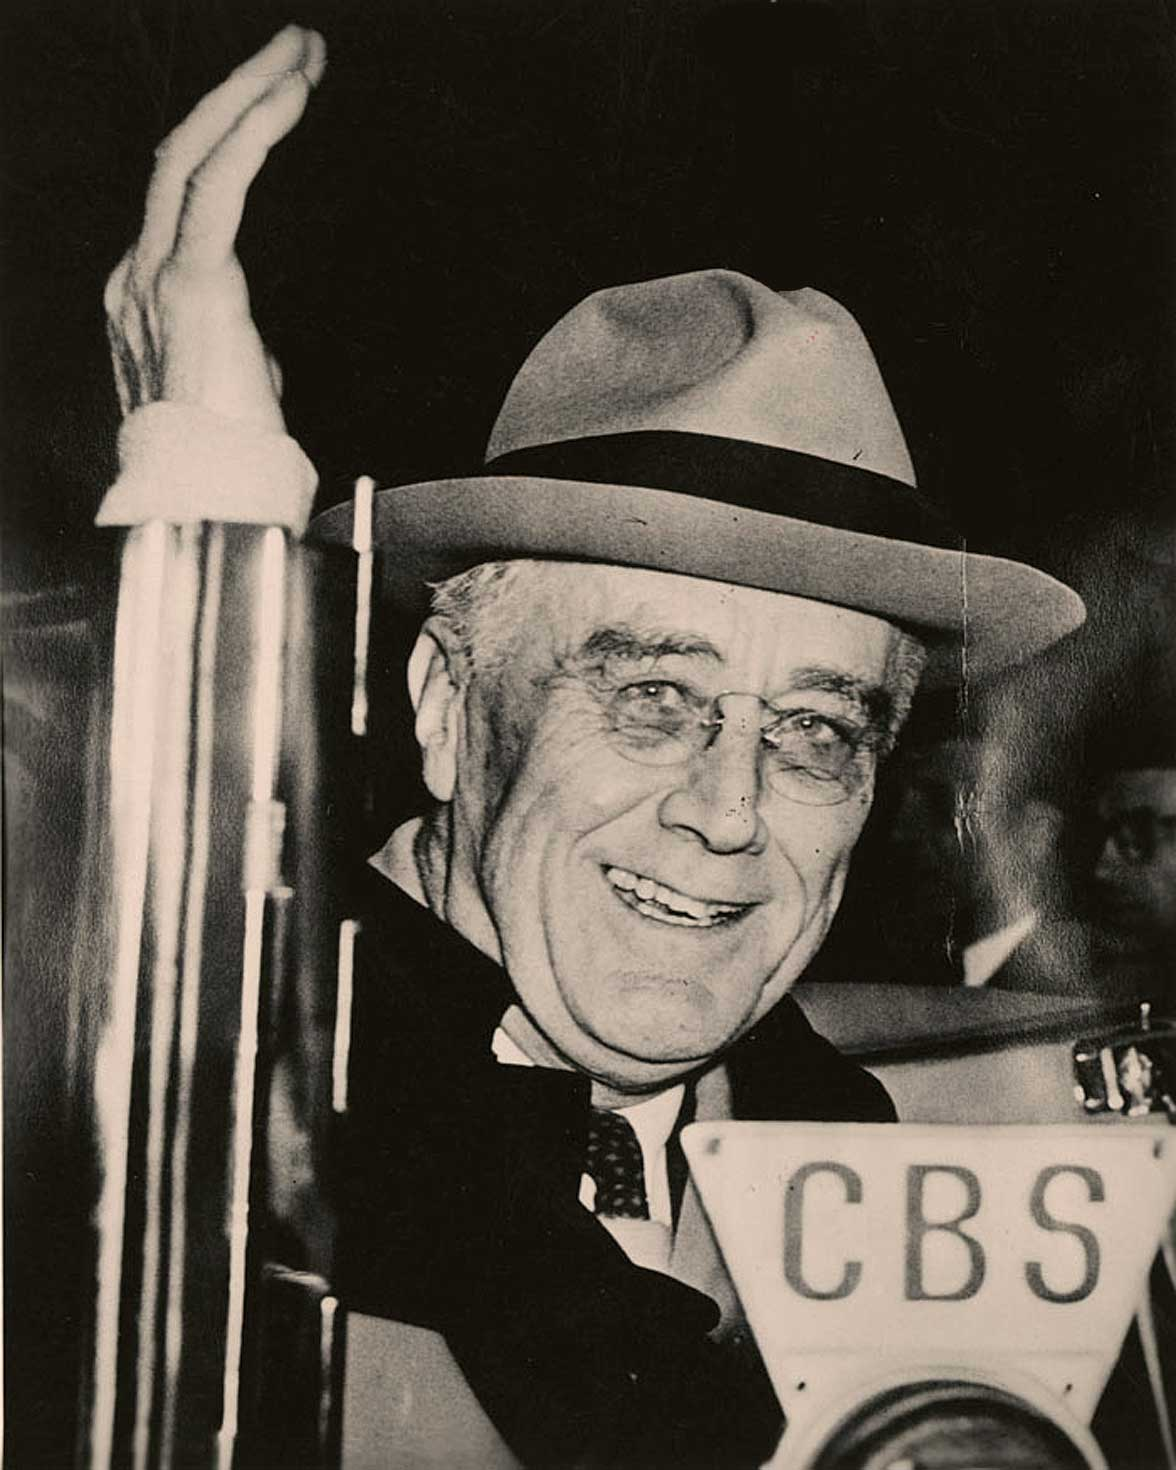 October 27, 1944 – A Campaign Stump Speech From FDR